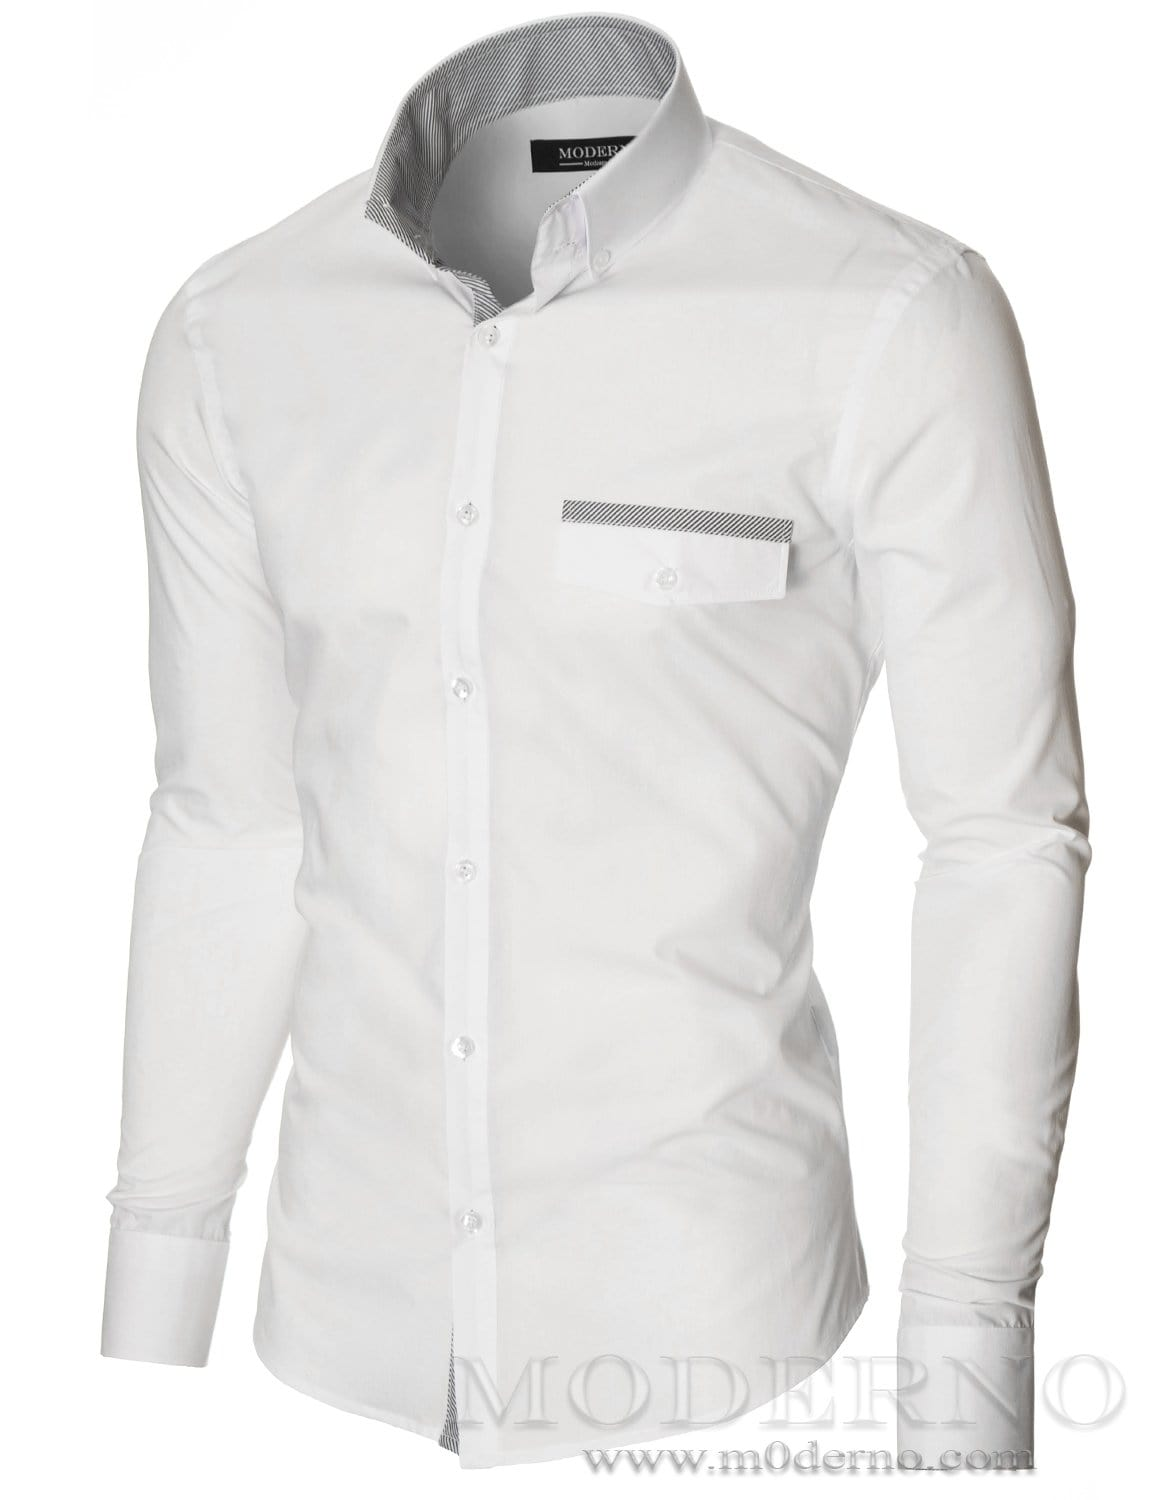 Mens Casual Button Down White Shirt With Fake Pocket By